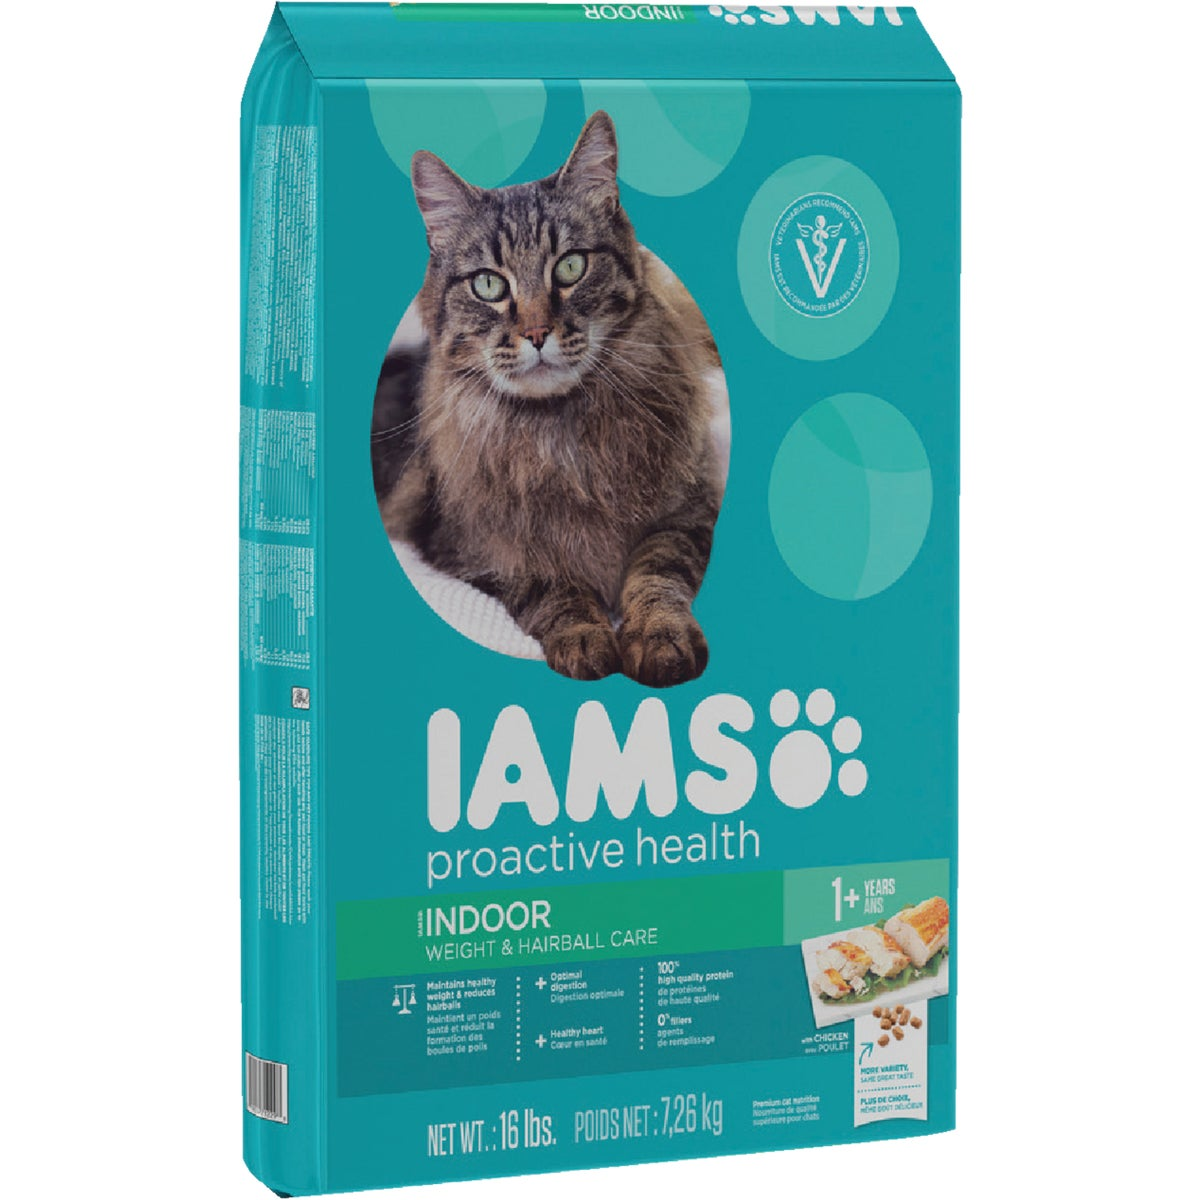 16LB WCTRL HAIRBALL FOOD - 12147 by Wolverton Iams